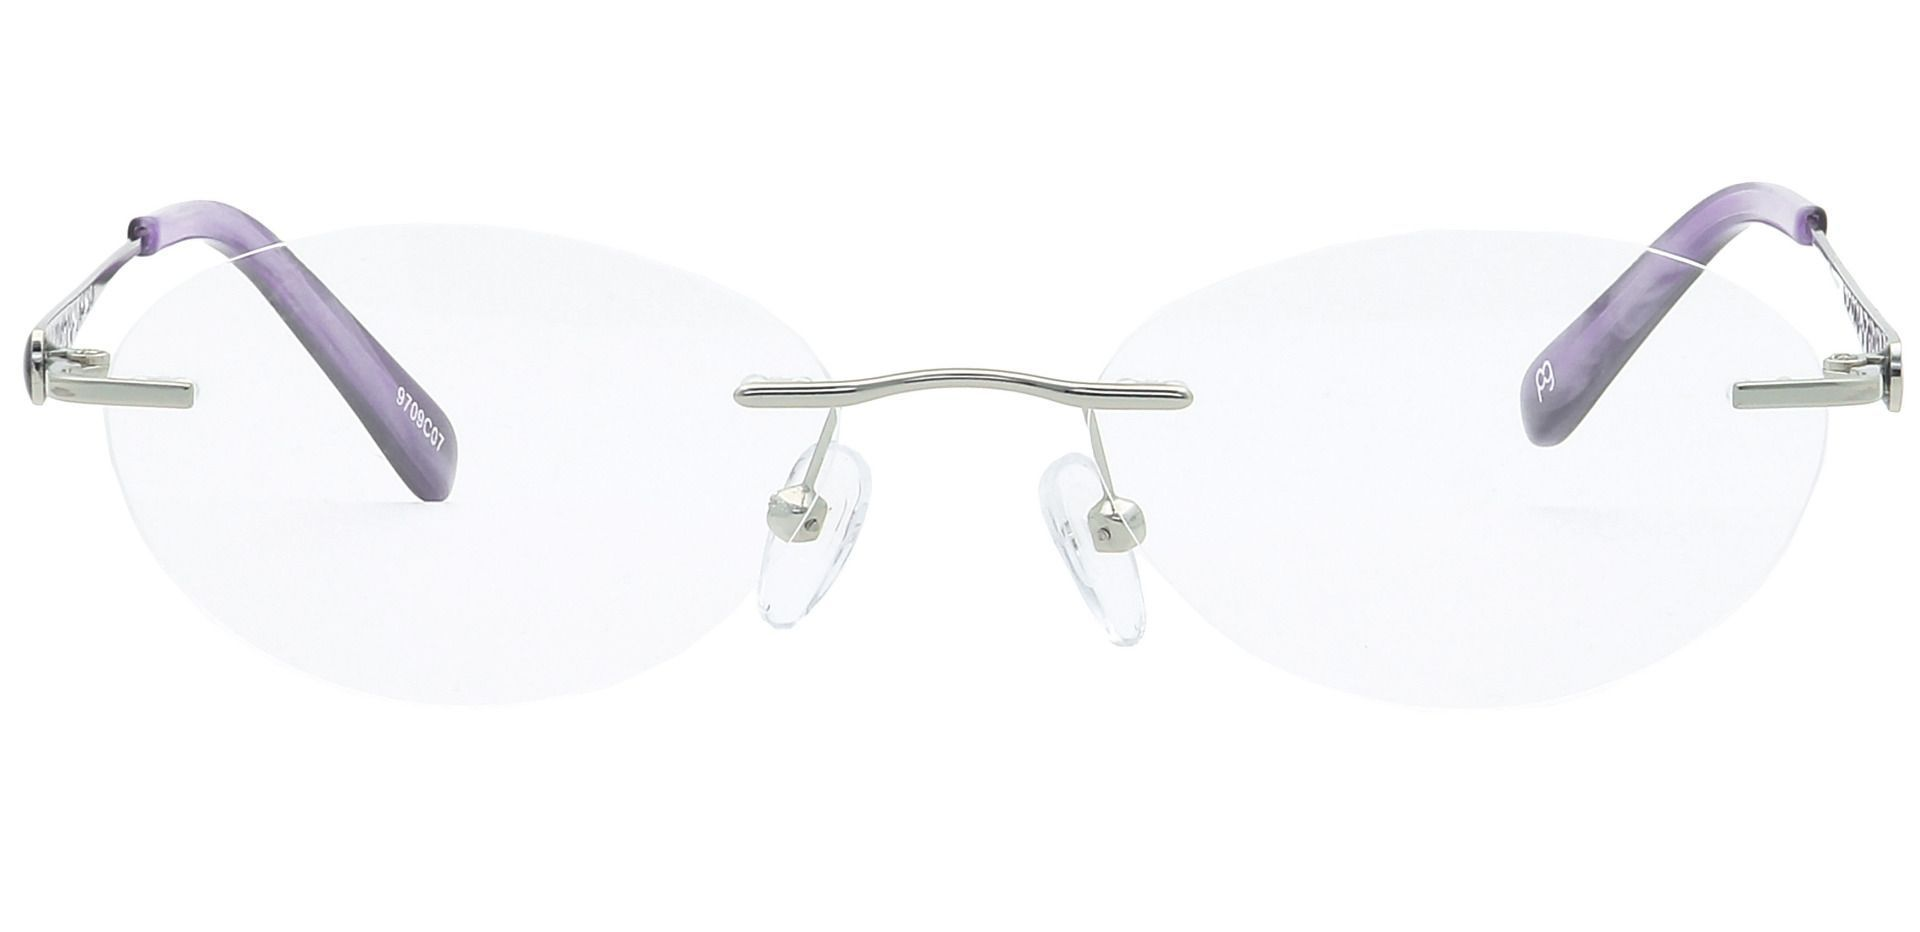 Christina Rimless Progressive Glasses - The Frame Is Silver And Purple